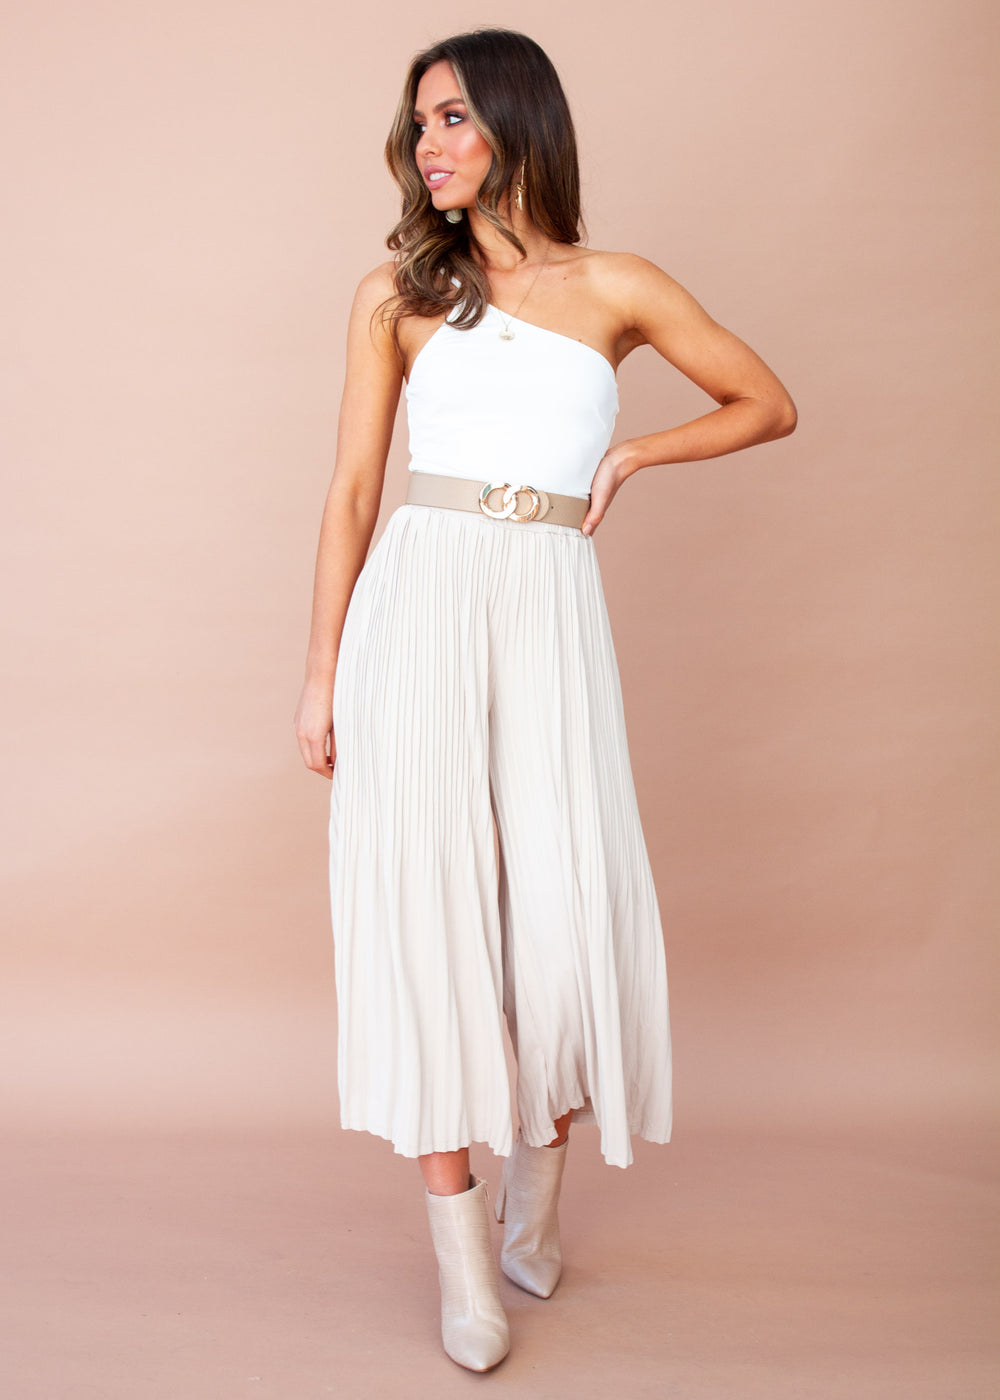 Roman Holiday Culottes - Beige